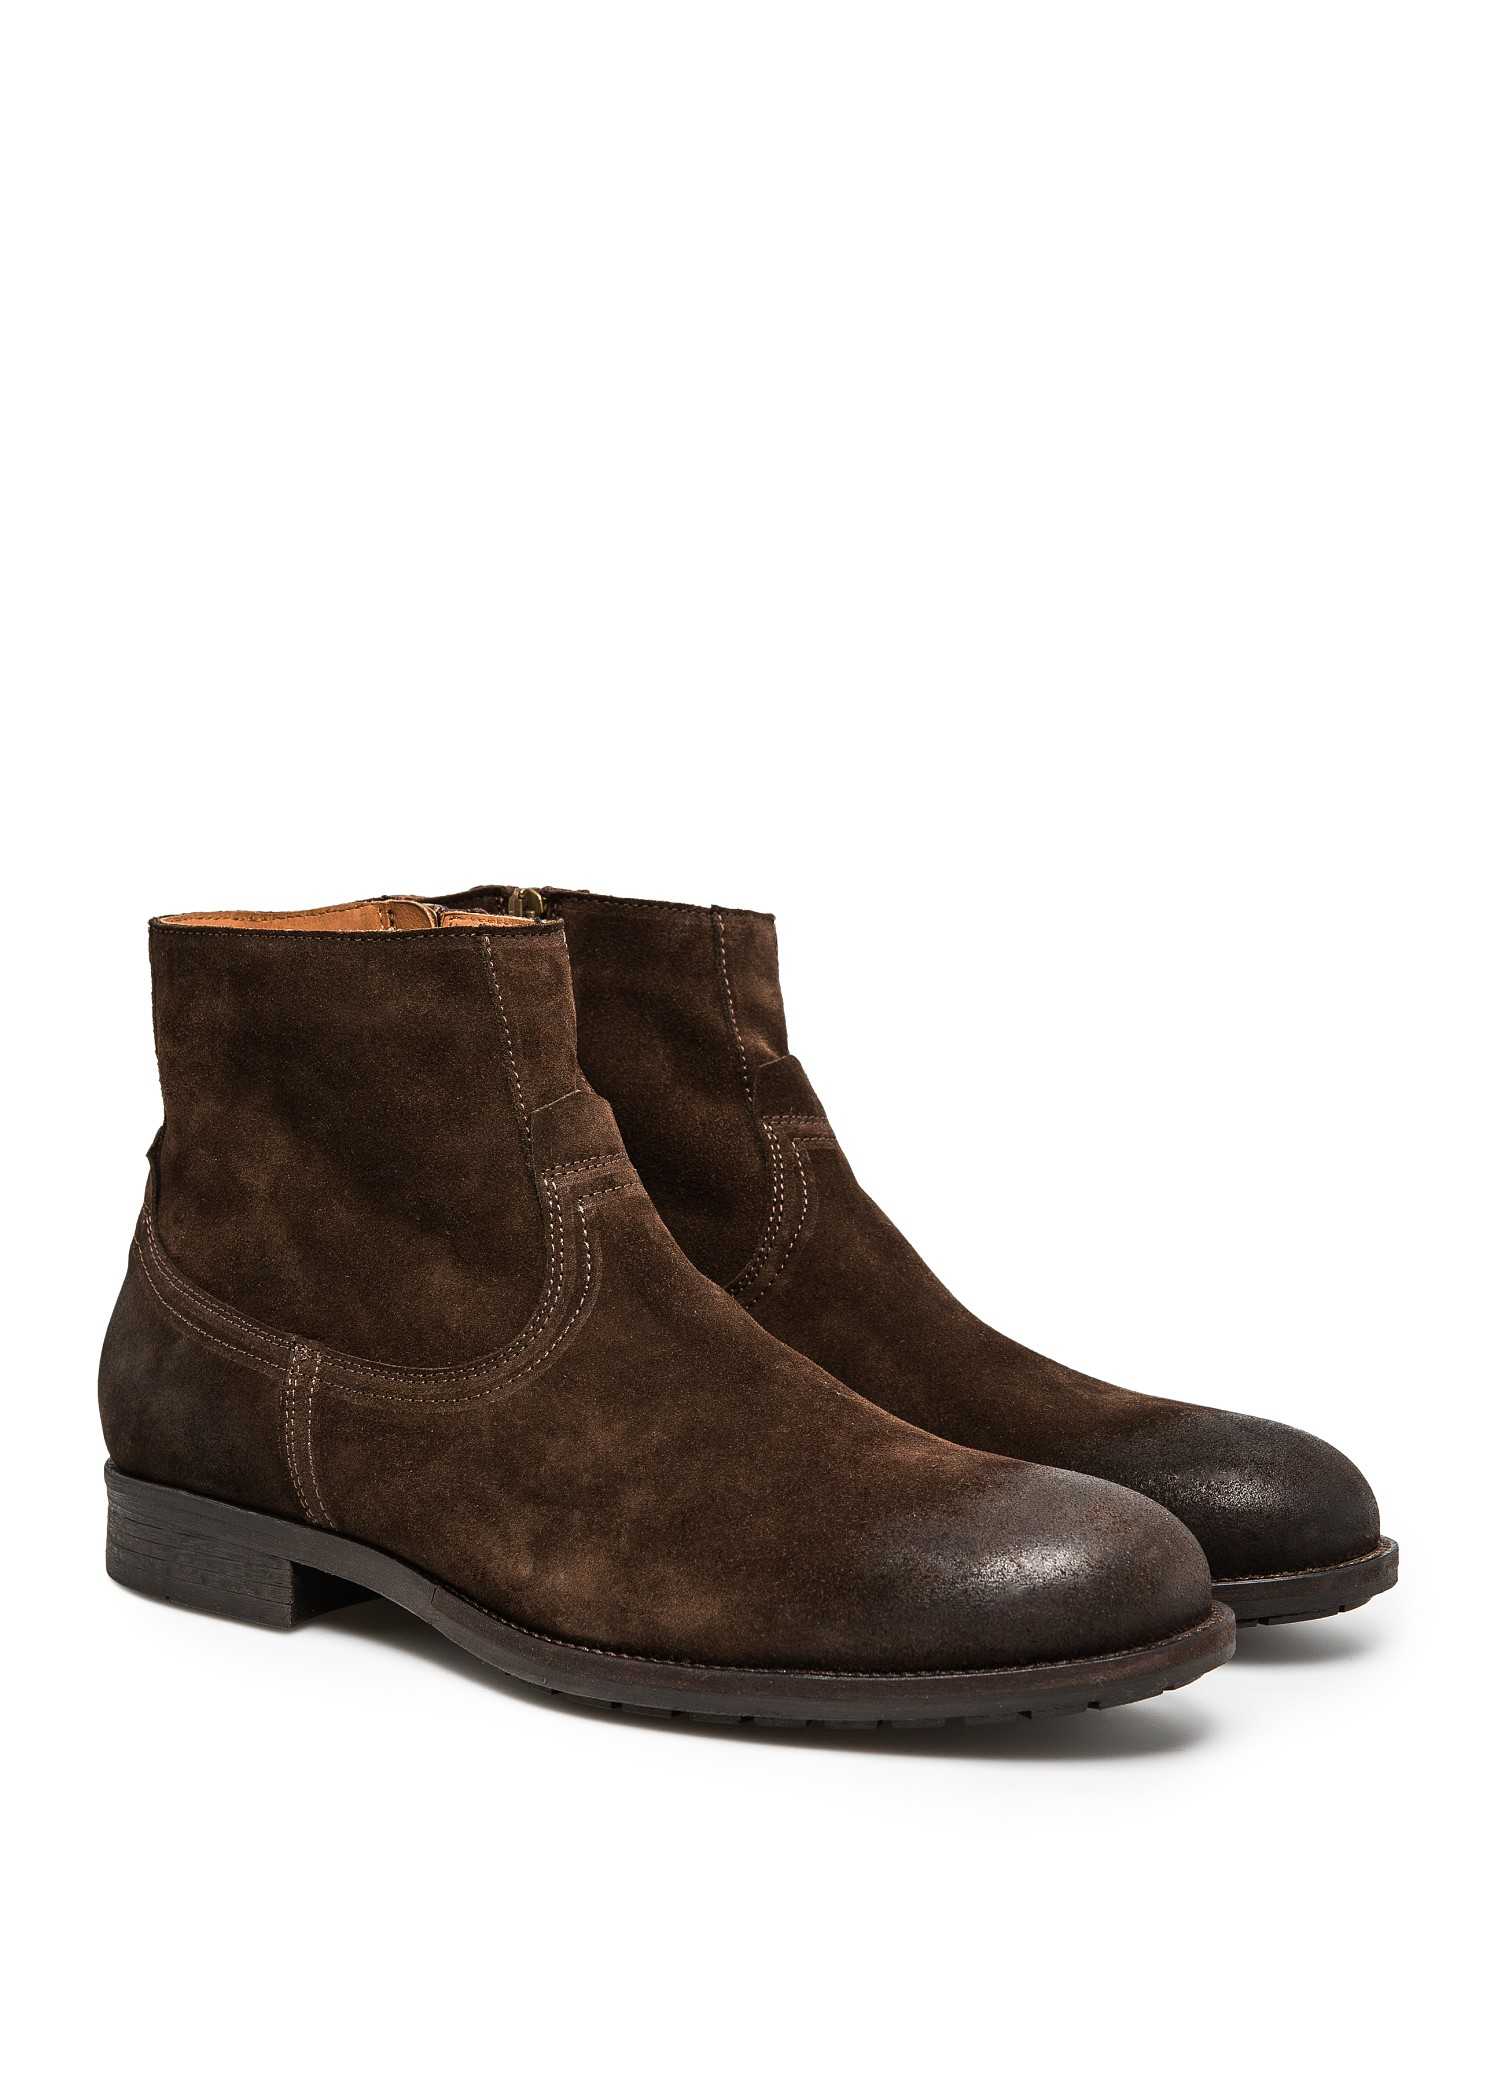 Mango Zipped Suede Ankle Boots In Brown For Men Lyst